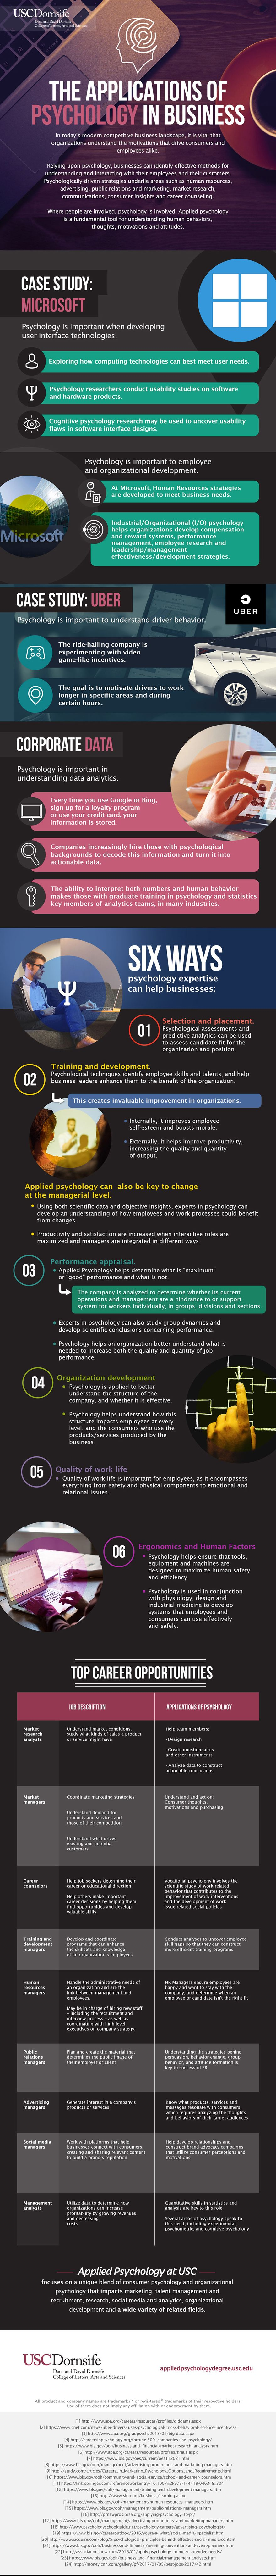 How Applied Psychology is Key to Business Development - Infographic